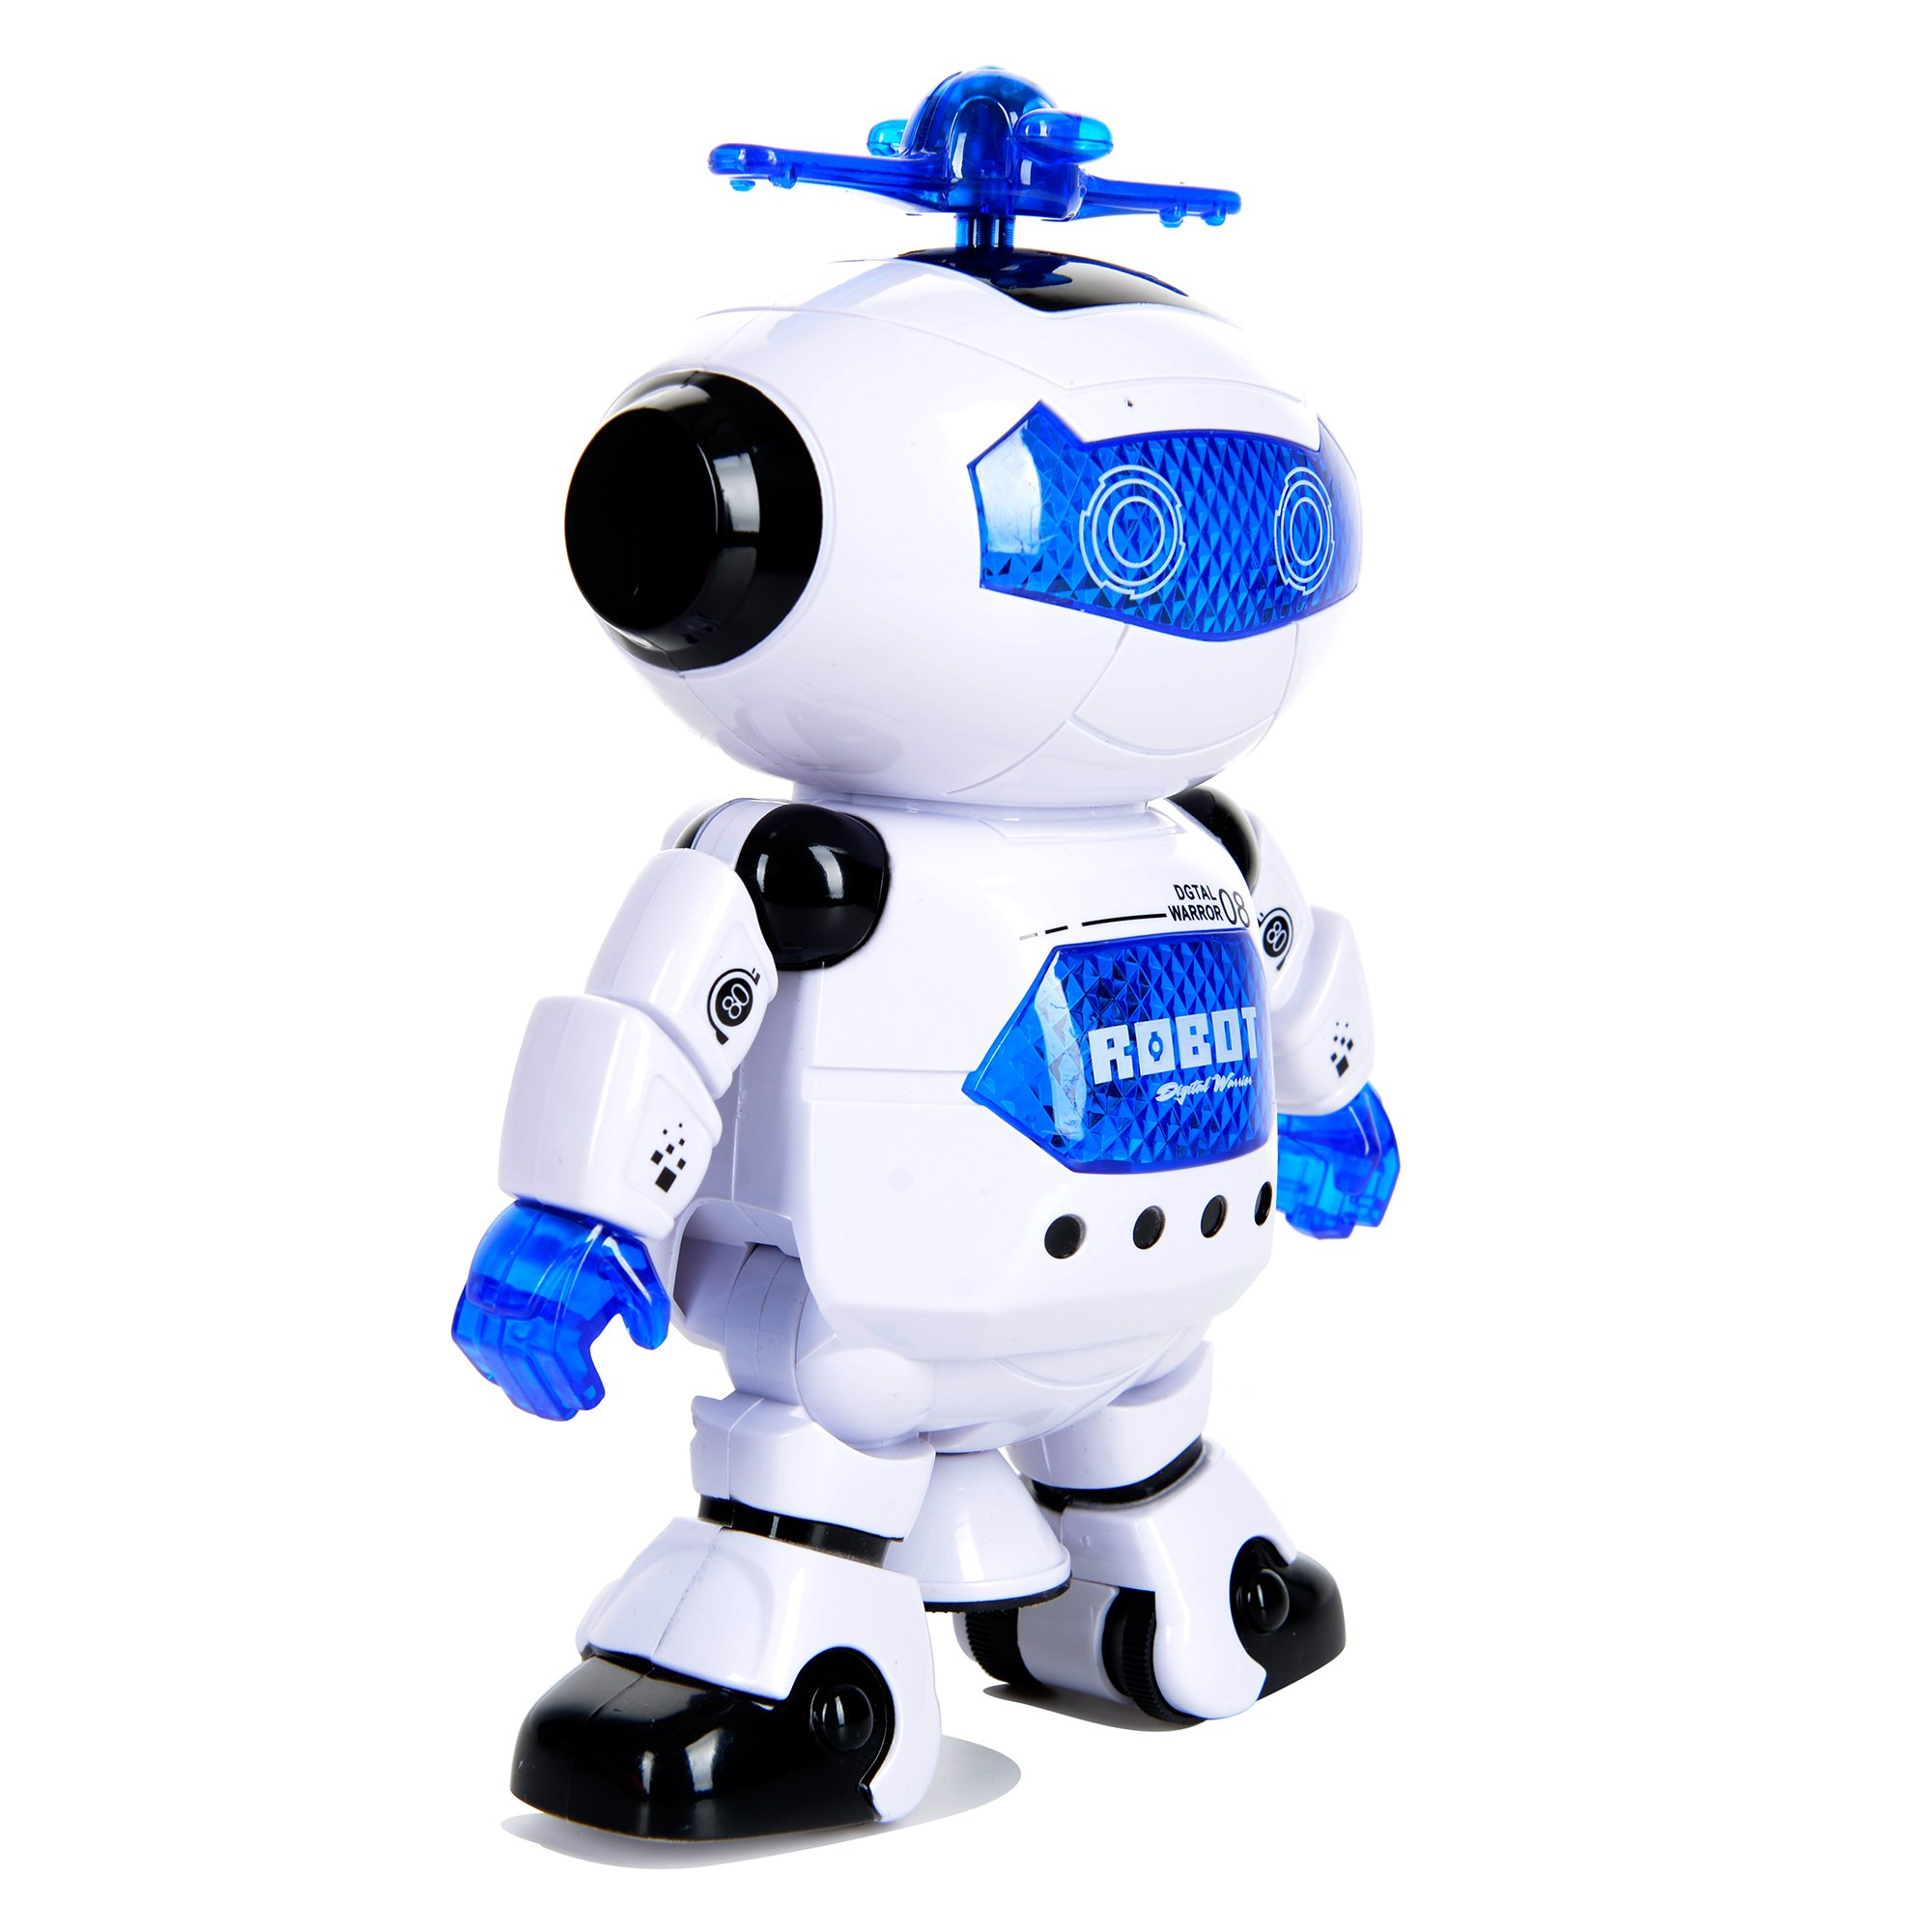 Toysery Electronic Walking Dancing Robot Toys With Music Lightening For Kids Boys Girls Toddlers, Battery Operated Included by  Toysery (Image #2)